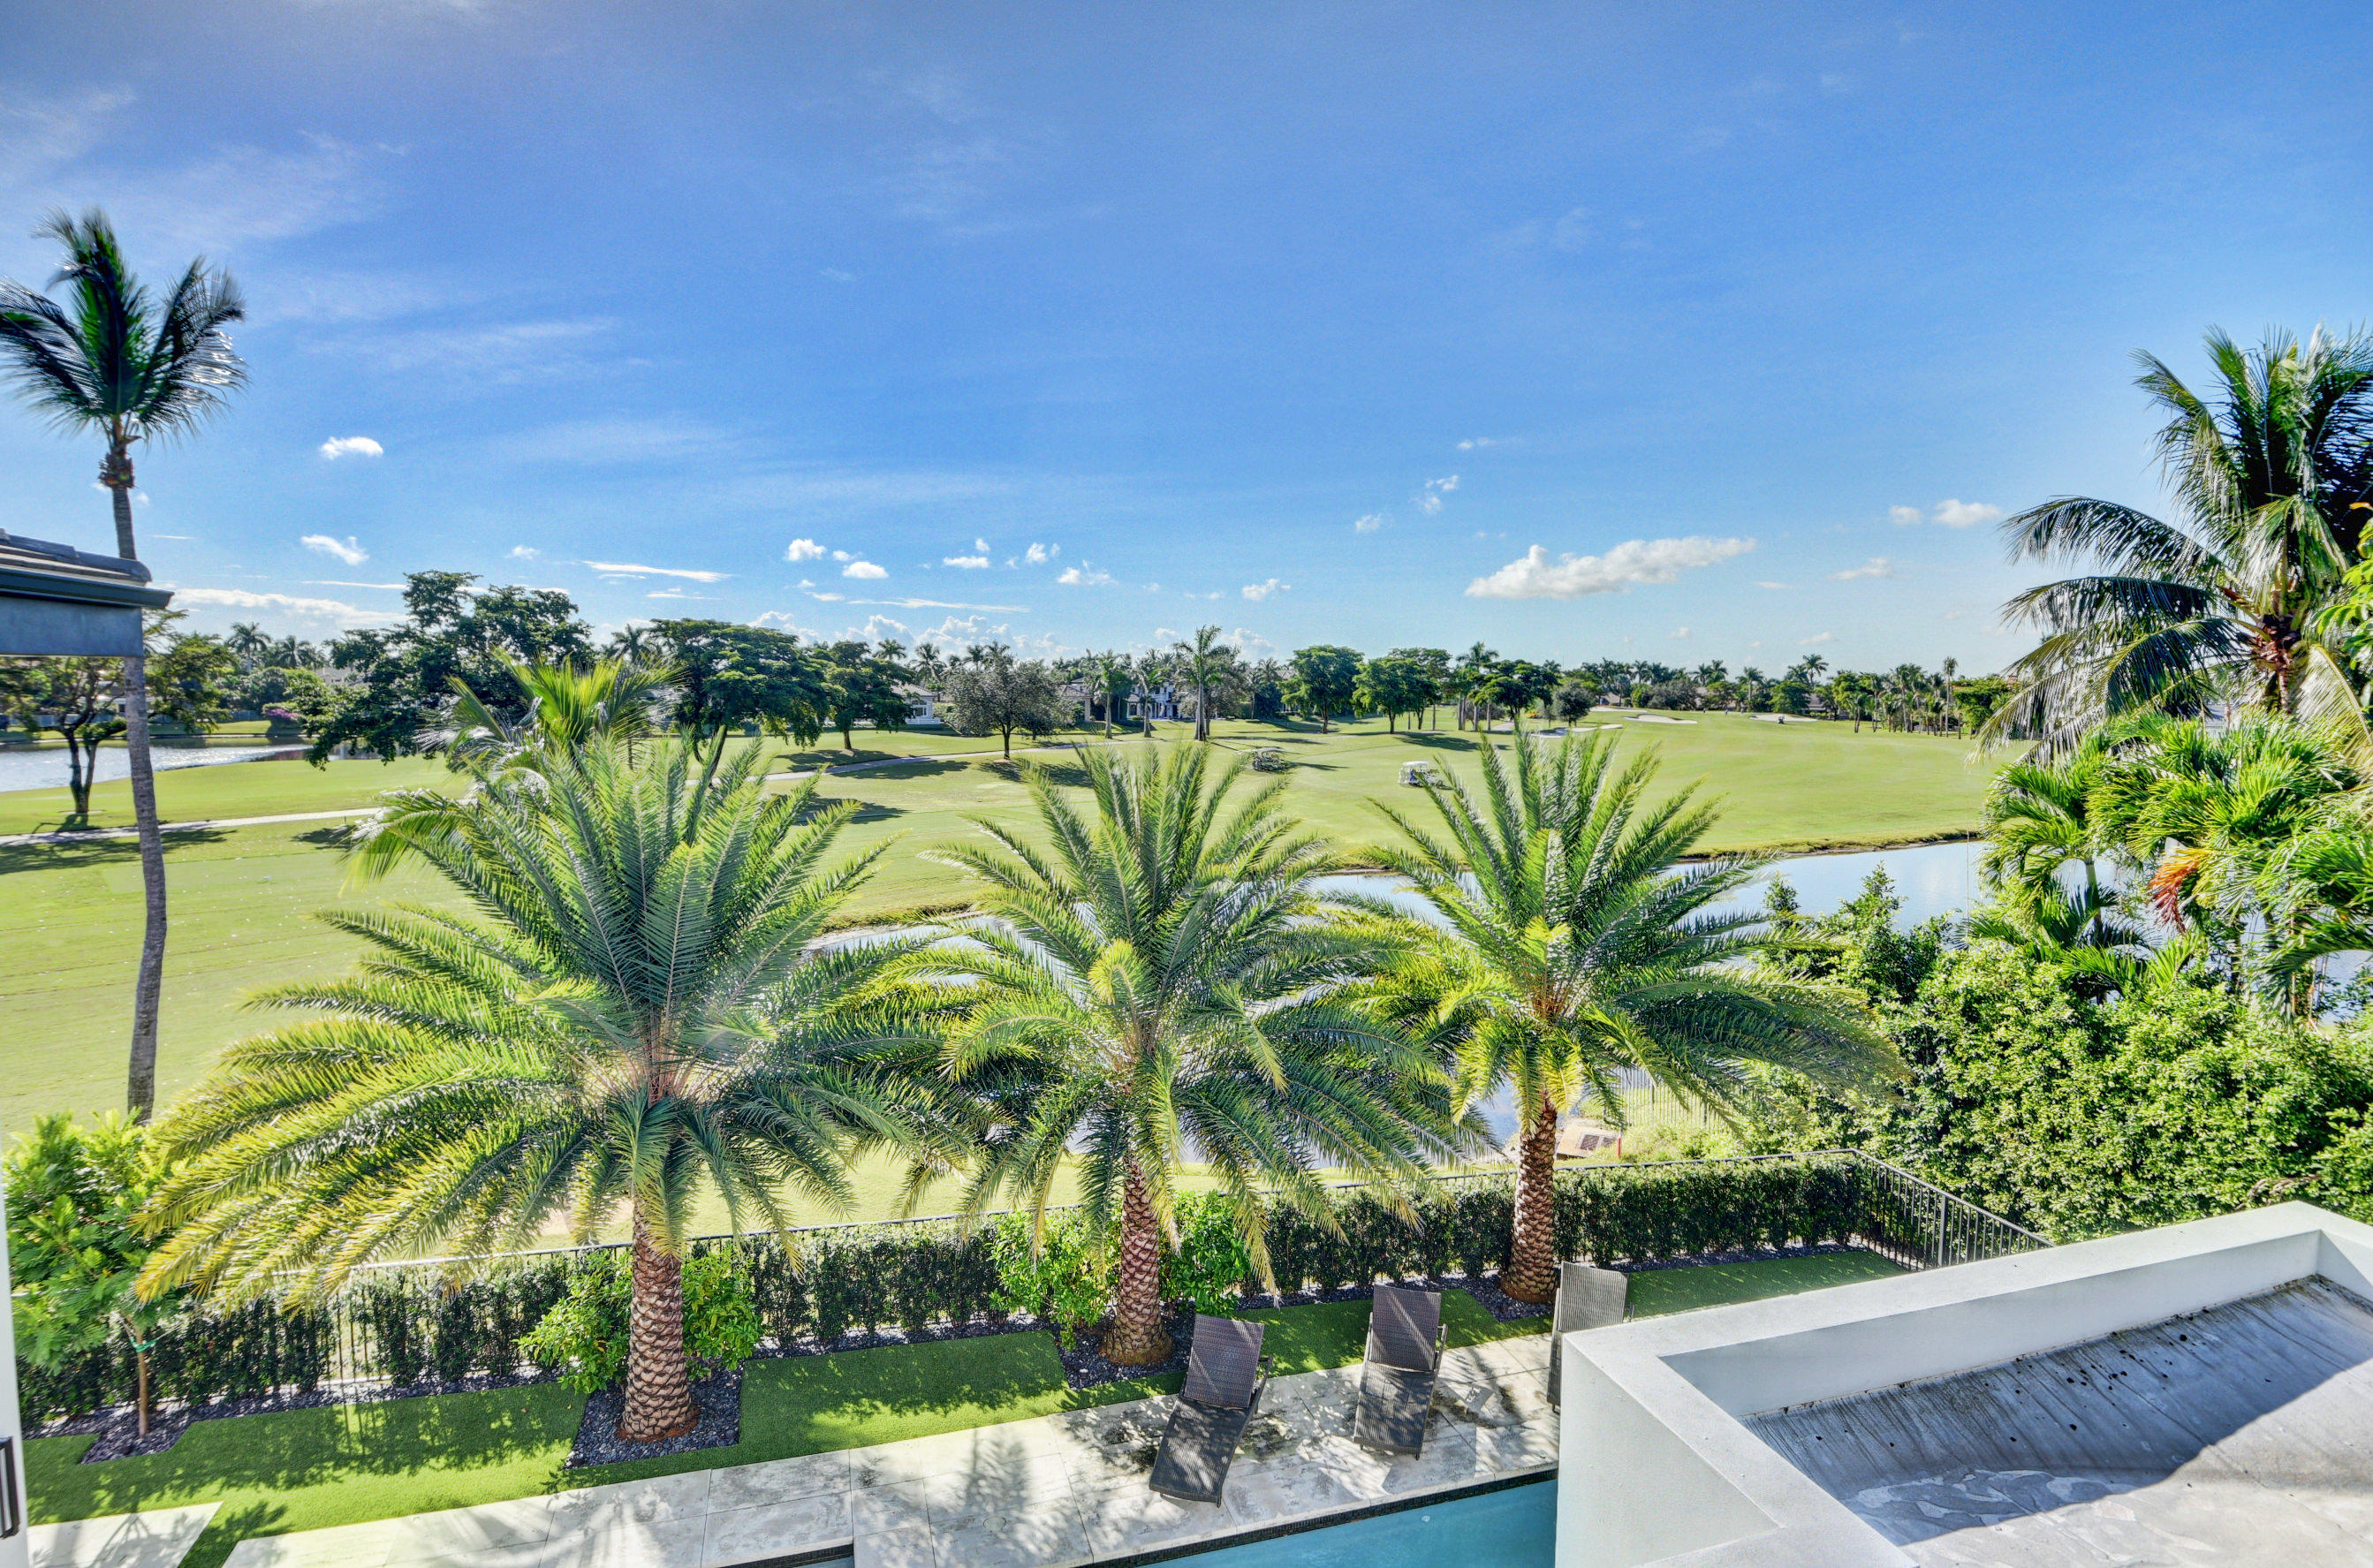 7758 Charney Lane, Boca Raton, Florida 33496, 5 Bedrooms Bedrooms, ,5.3 BathroomsBathrooms,Single Family,For Sale,ST ANDREWS COUNTRY CLUB,Charney,RX-10478141